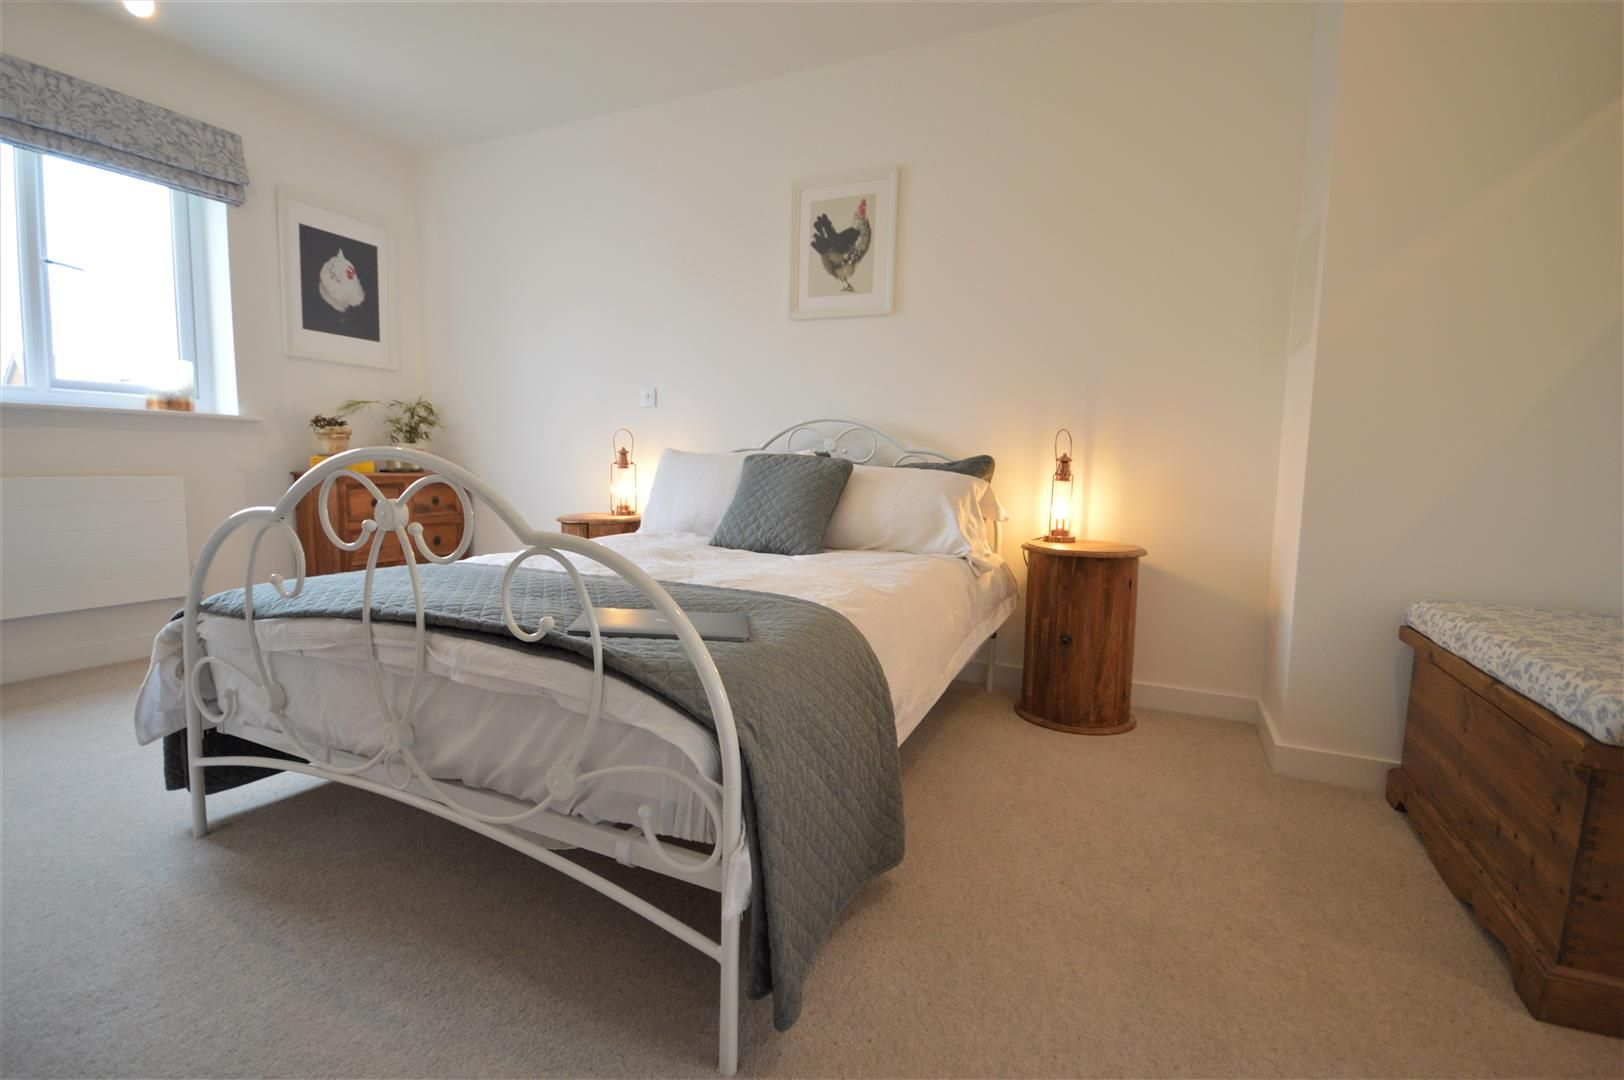 5 bed detached for sale in Weobley  - Property Image 15